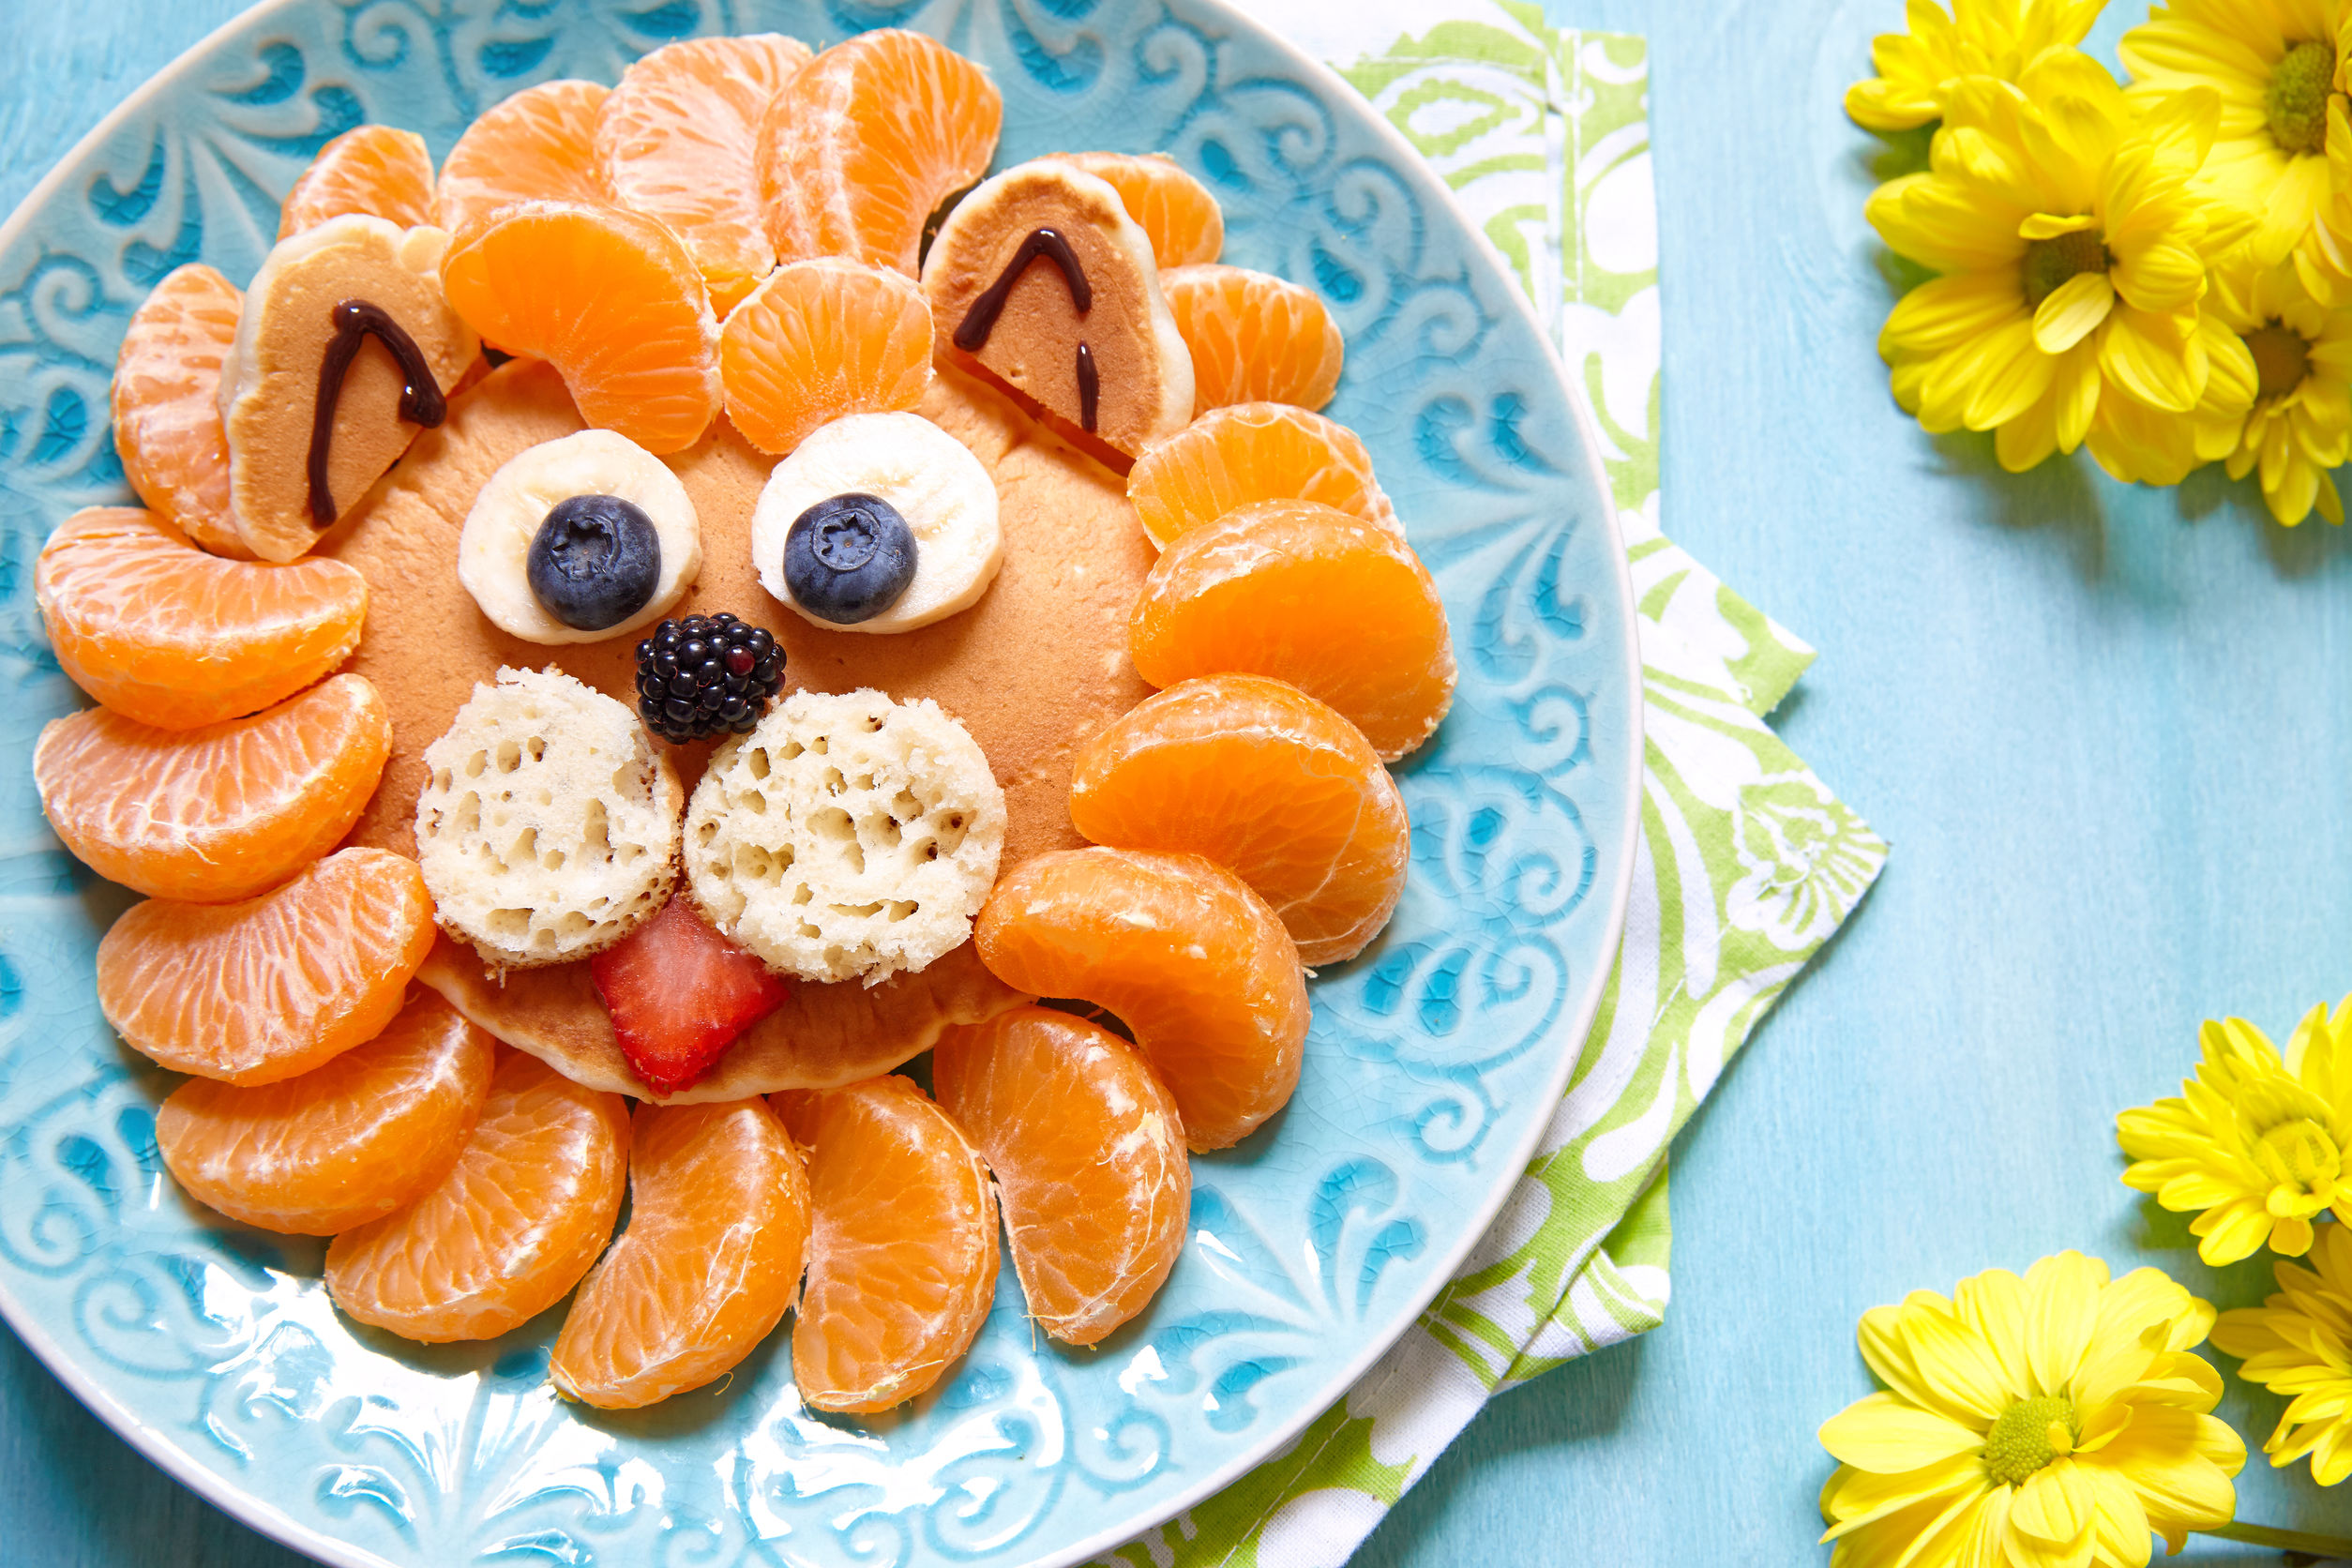 Adorable Lion King Pancakes ready to be enjoyed.